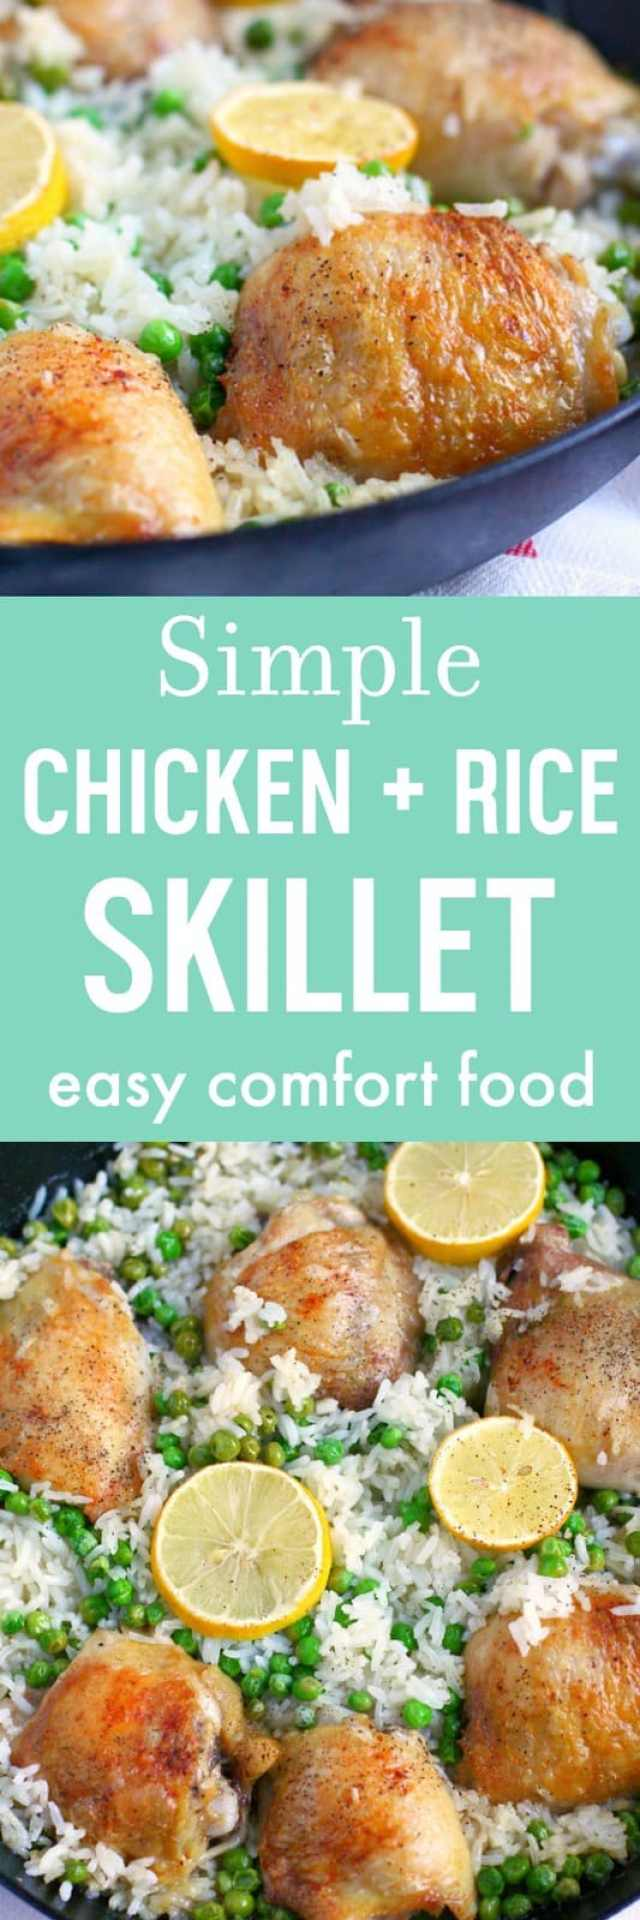 Simple and comforting skillet chicken and rice is a family friendly gluten free meal.